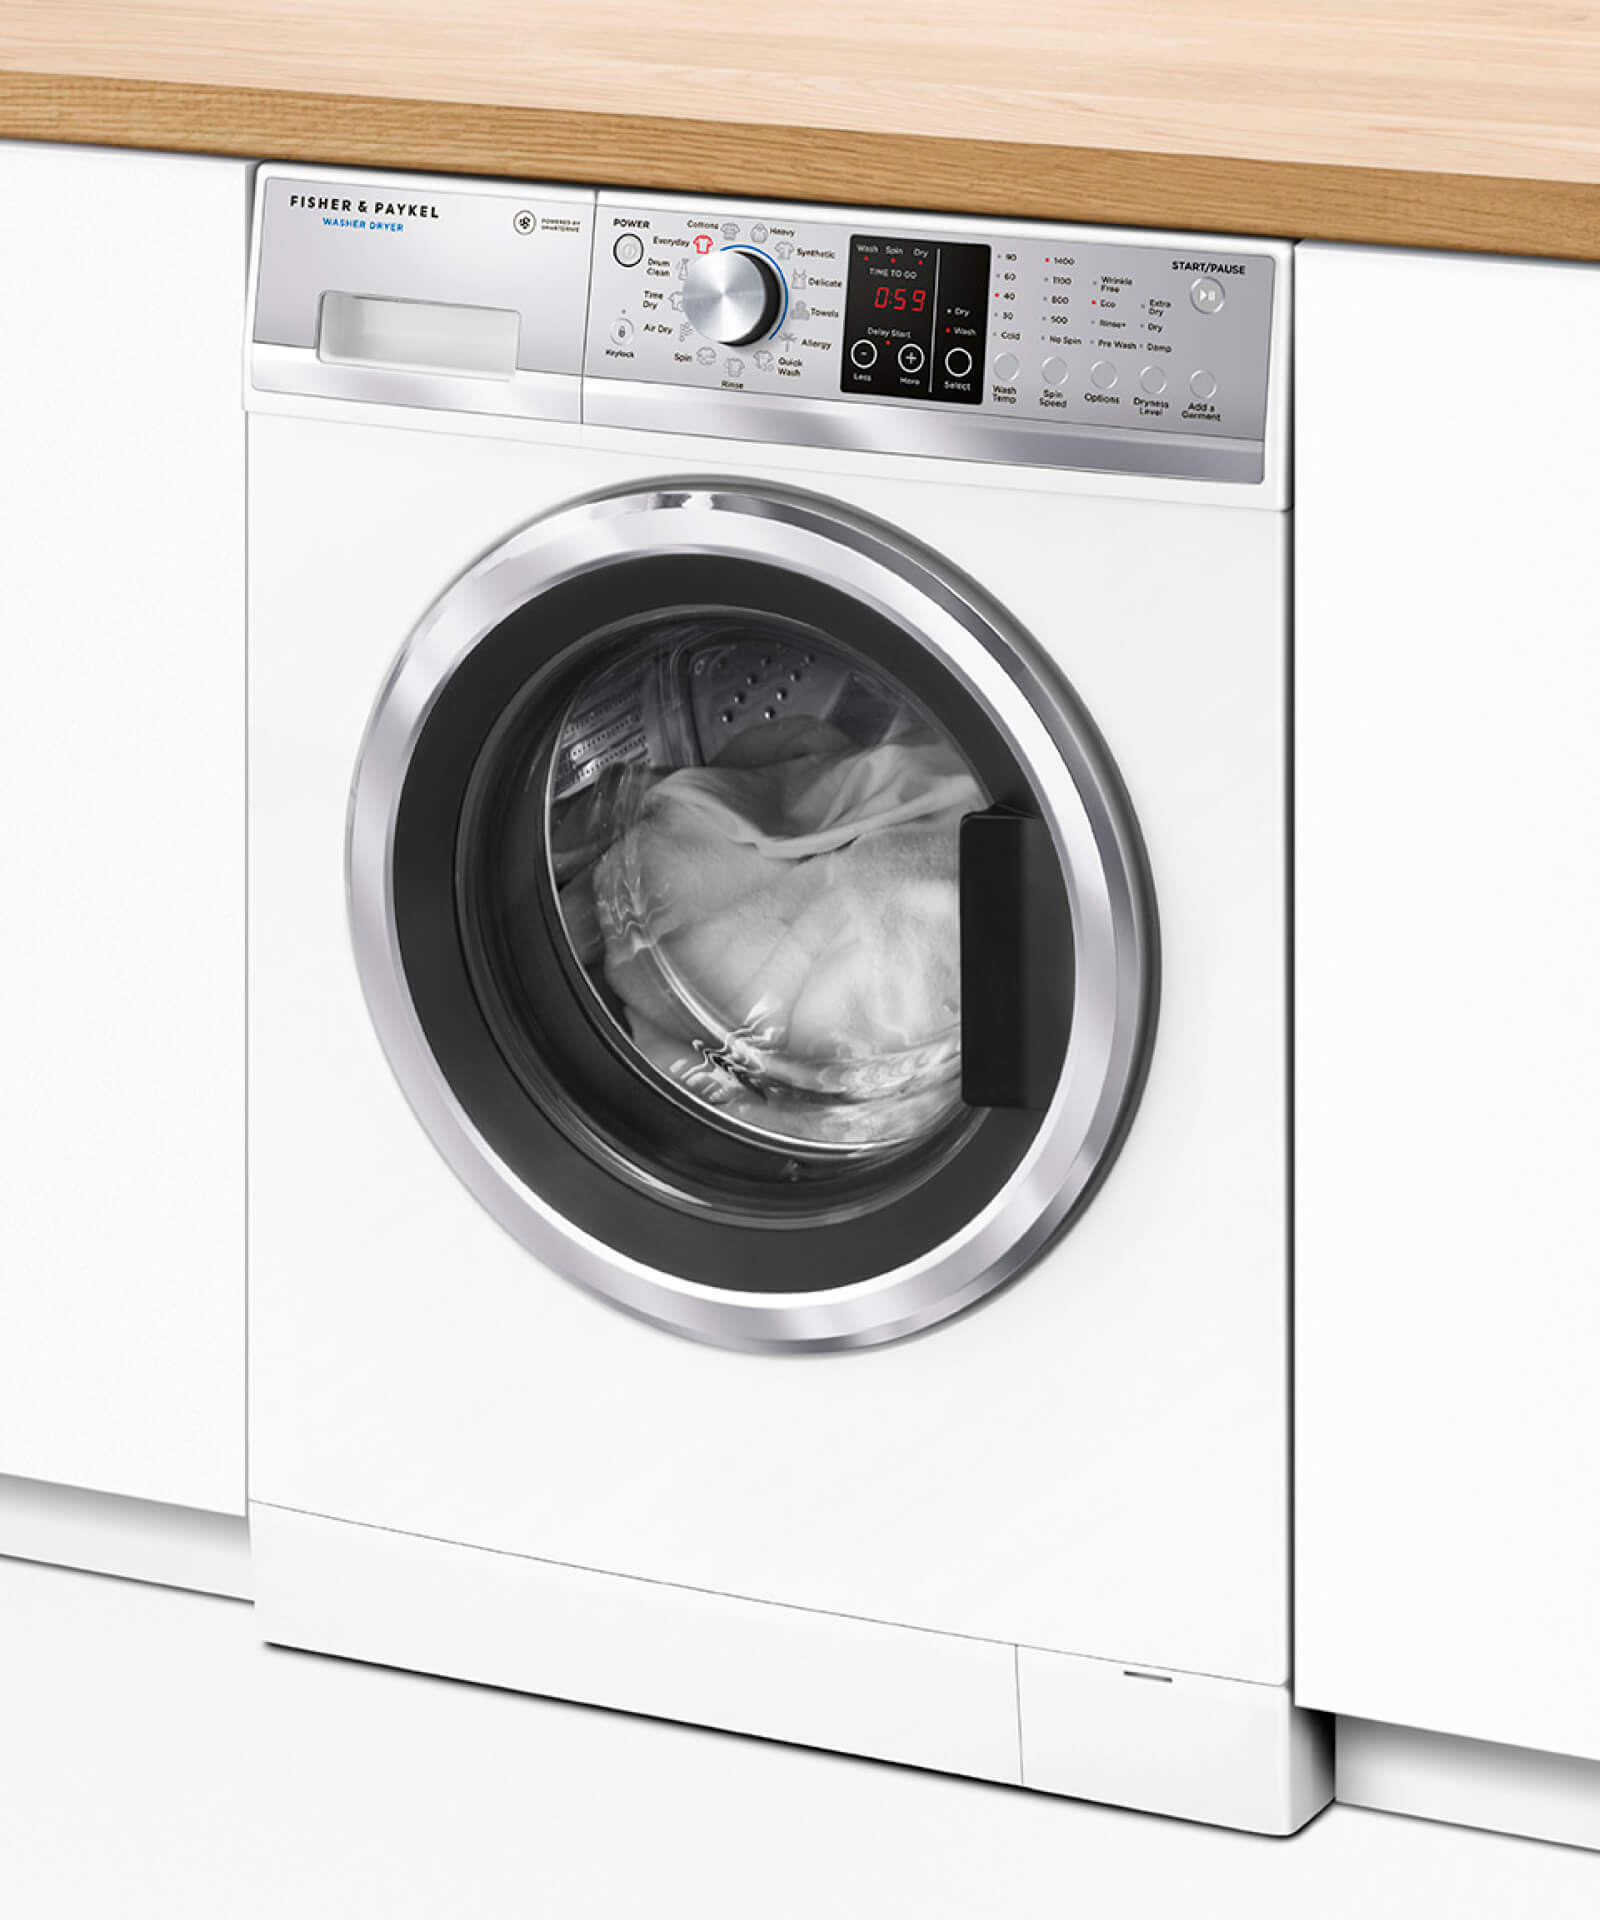 WD8560F1 Washer Dryer Combo 85kg5kg Fisher Paykel NZ